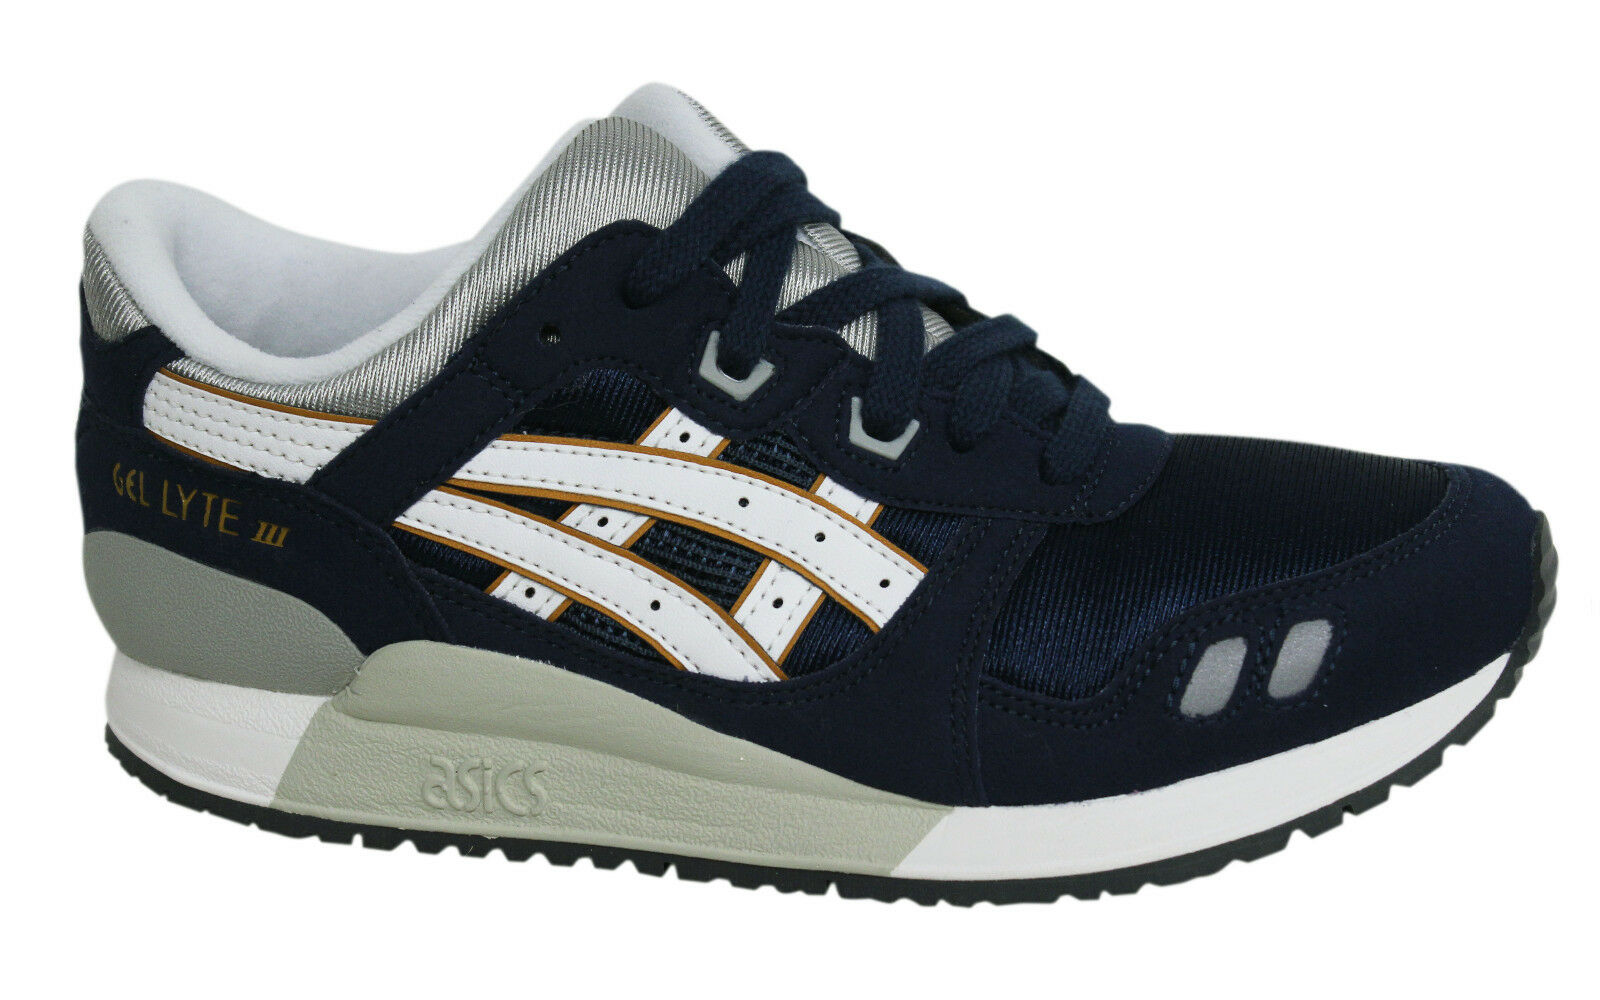 Asics Gel-Lyte III Lace Up Navy Synthetic Kids Junior Trainers ...